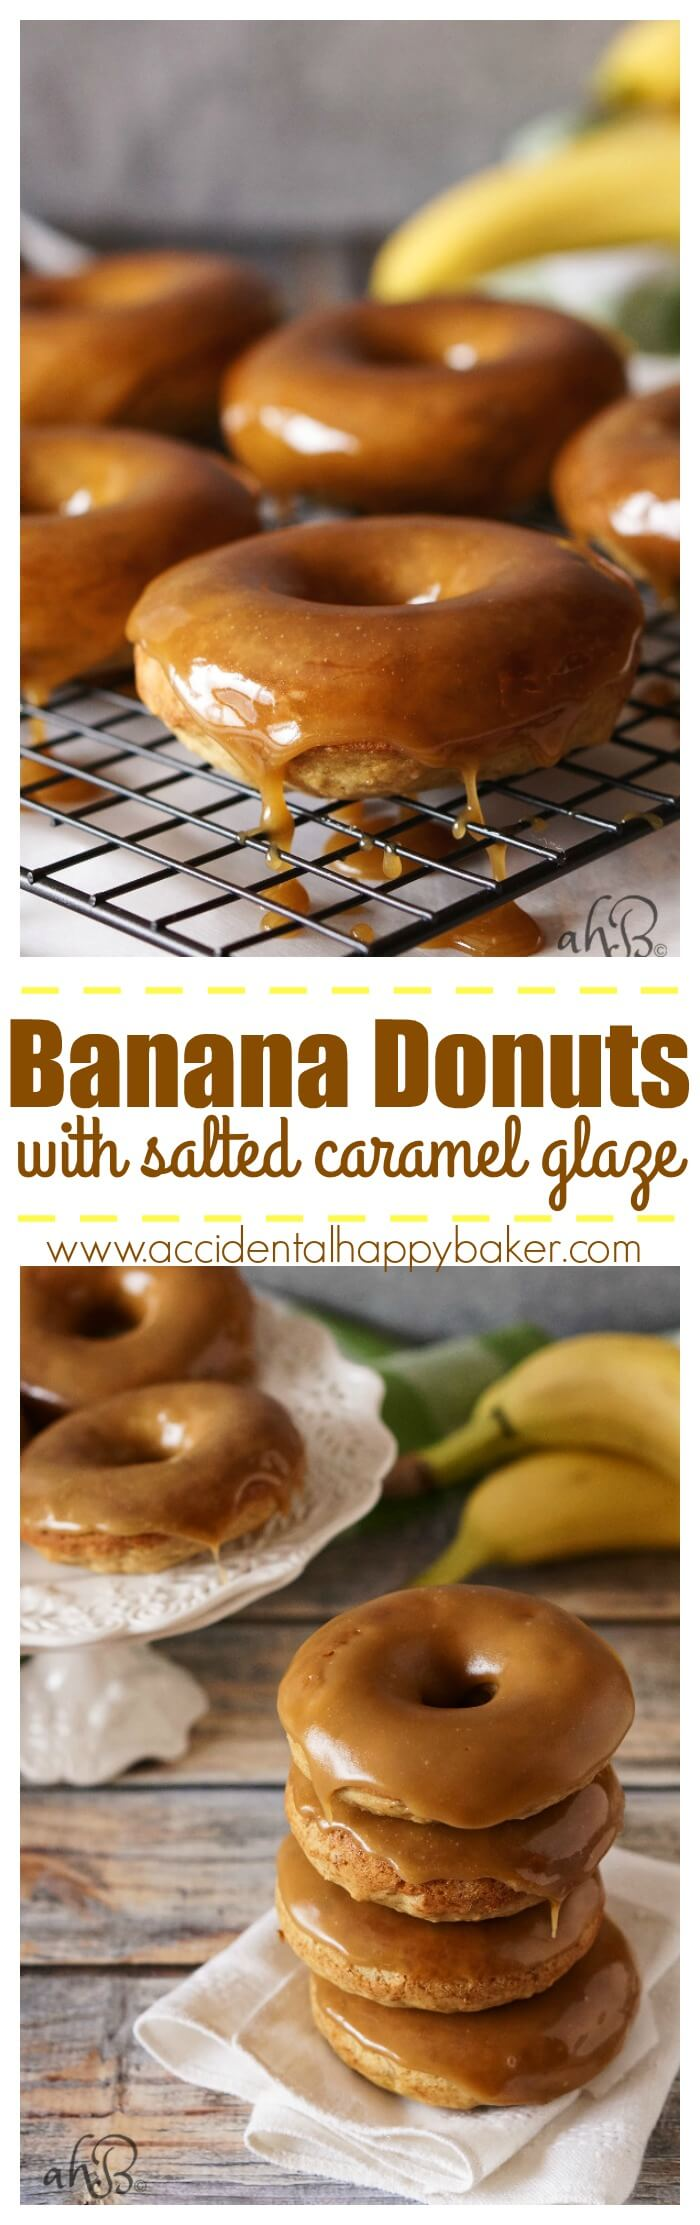 Moist banana bread-like donut dipped in a gorgeous buttery dark caramel glaze that sets up so pretty, with a pinch of salt to even out the sweetness. Recipe on www.accidentalhappybaker.com @AHBamy